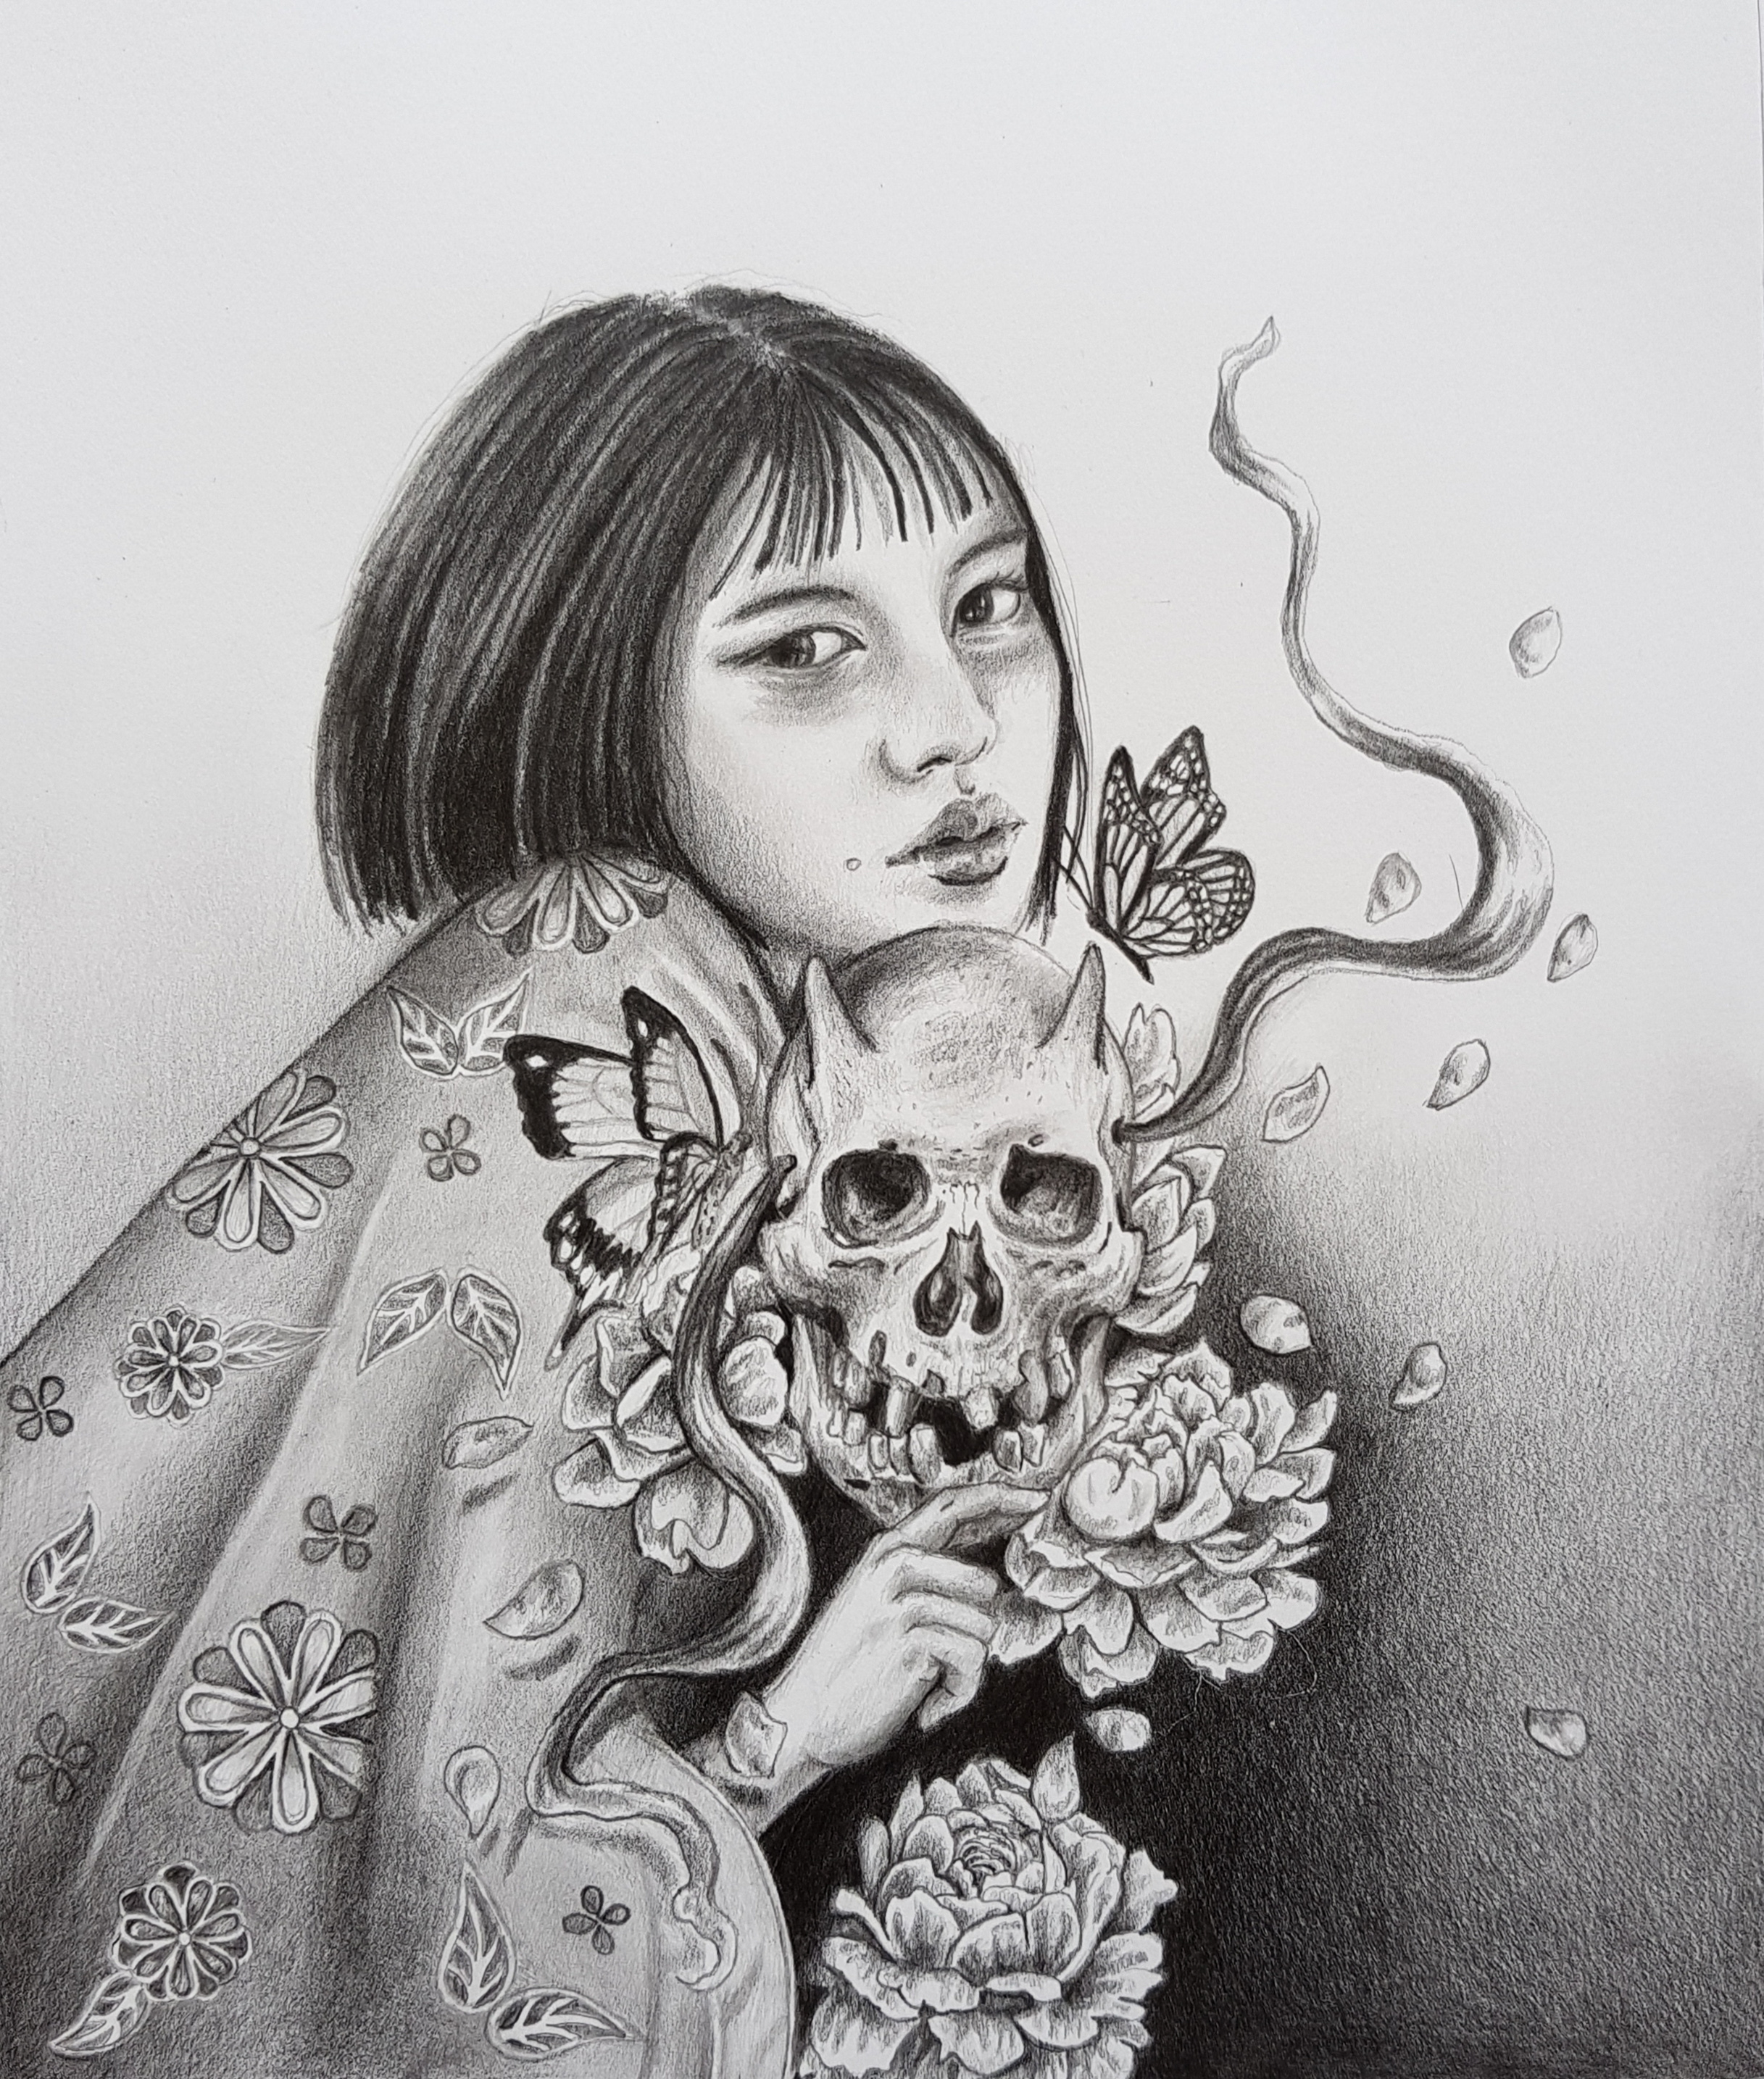 'Flower Your Demons' 2018  Graphite on Bristol